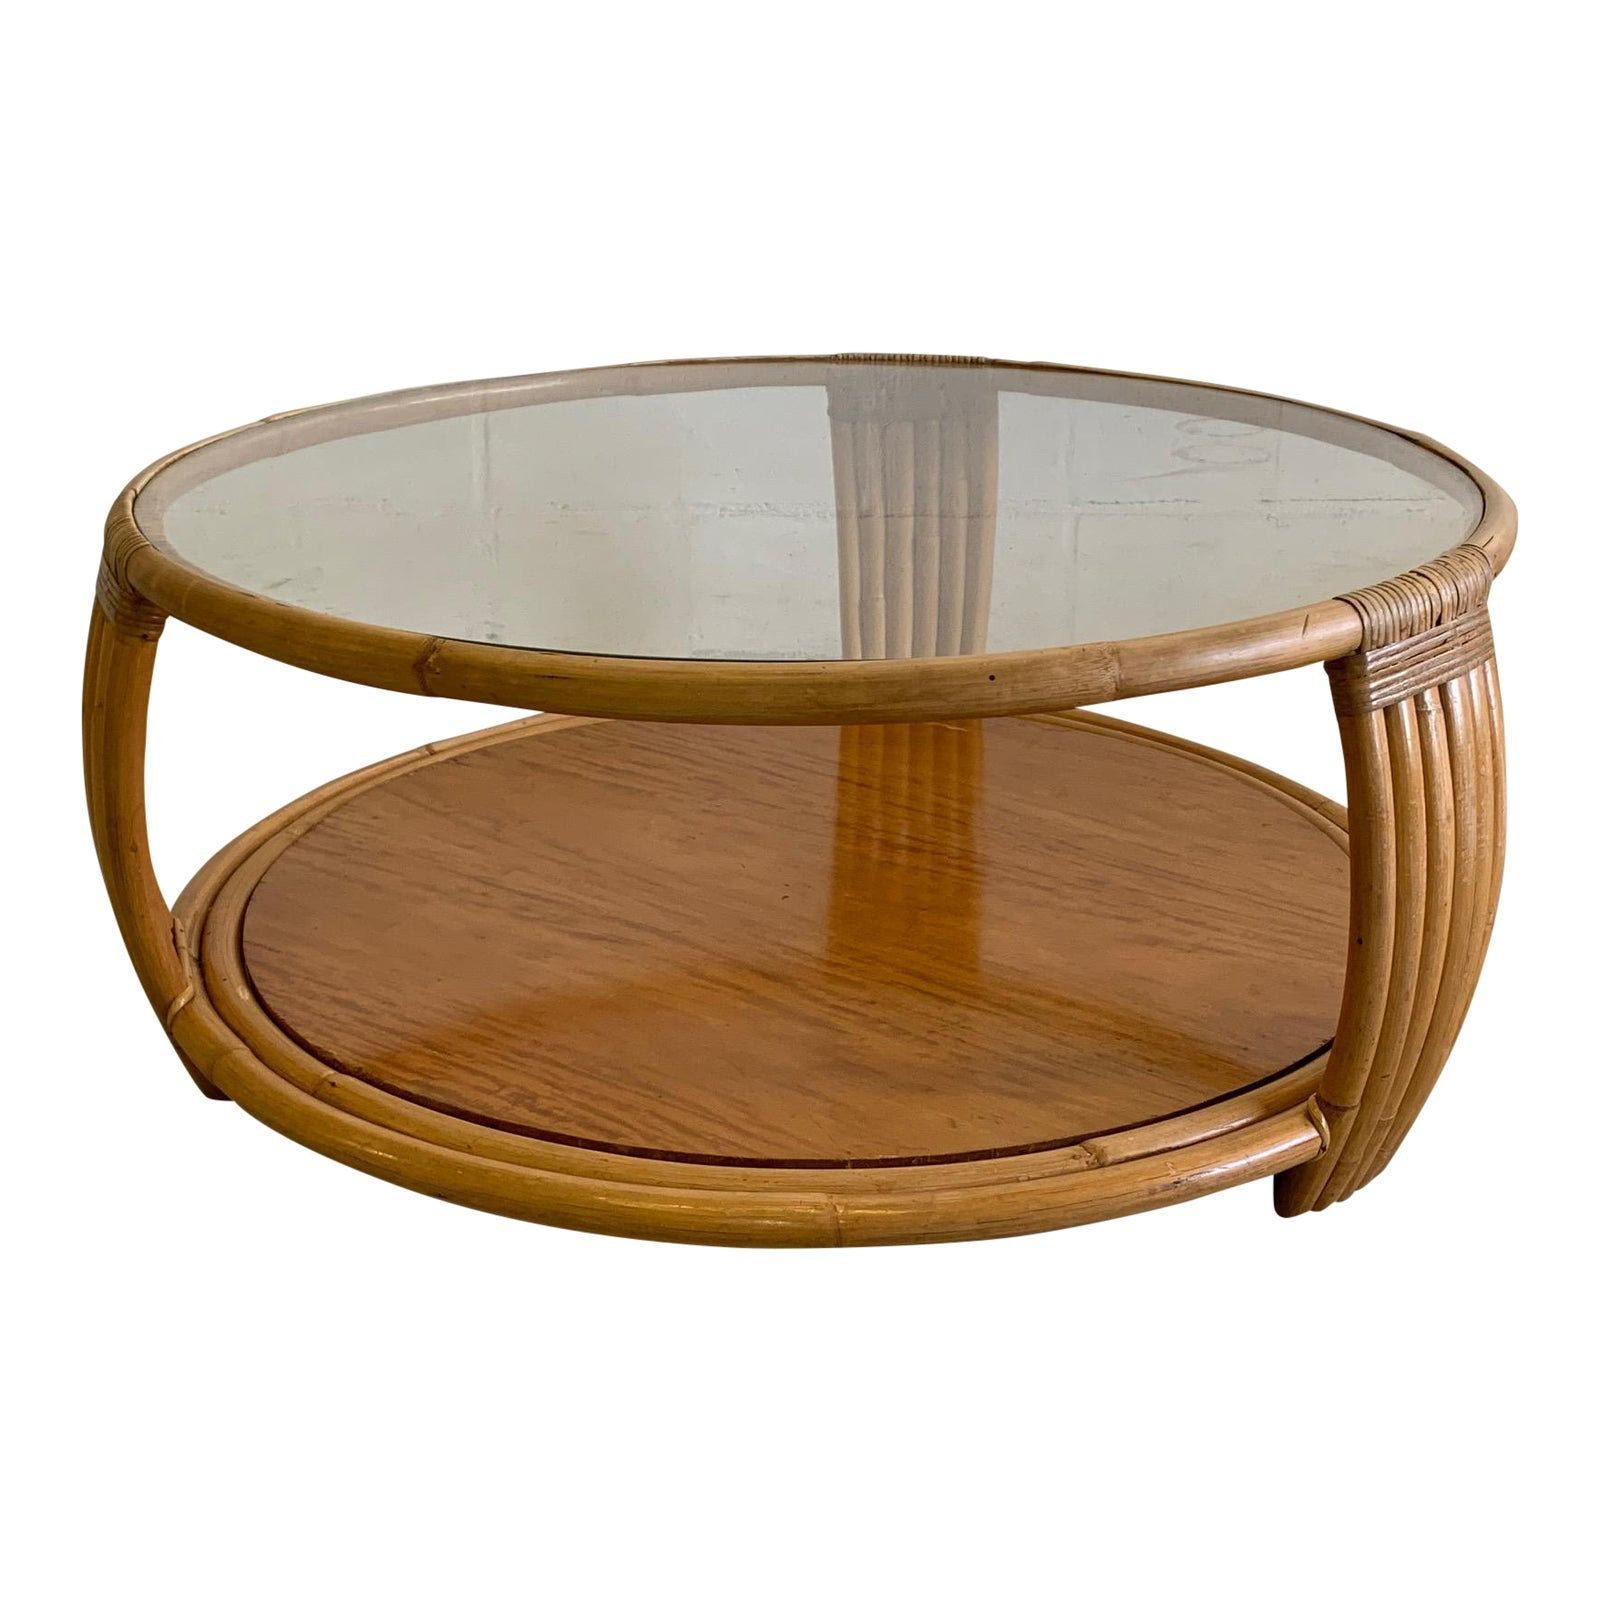 Paul Frankl Style Rattan Round Coffee Table